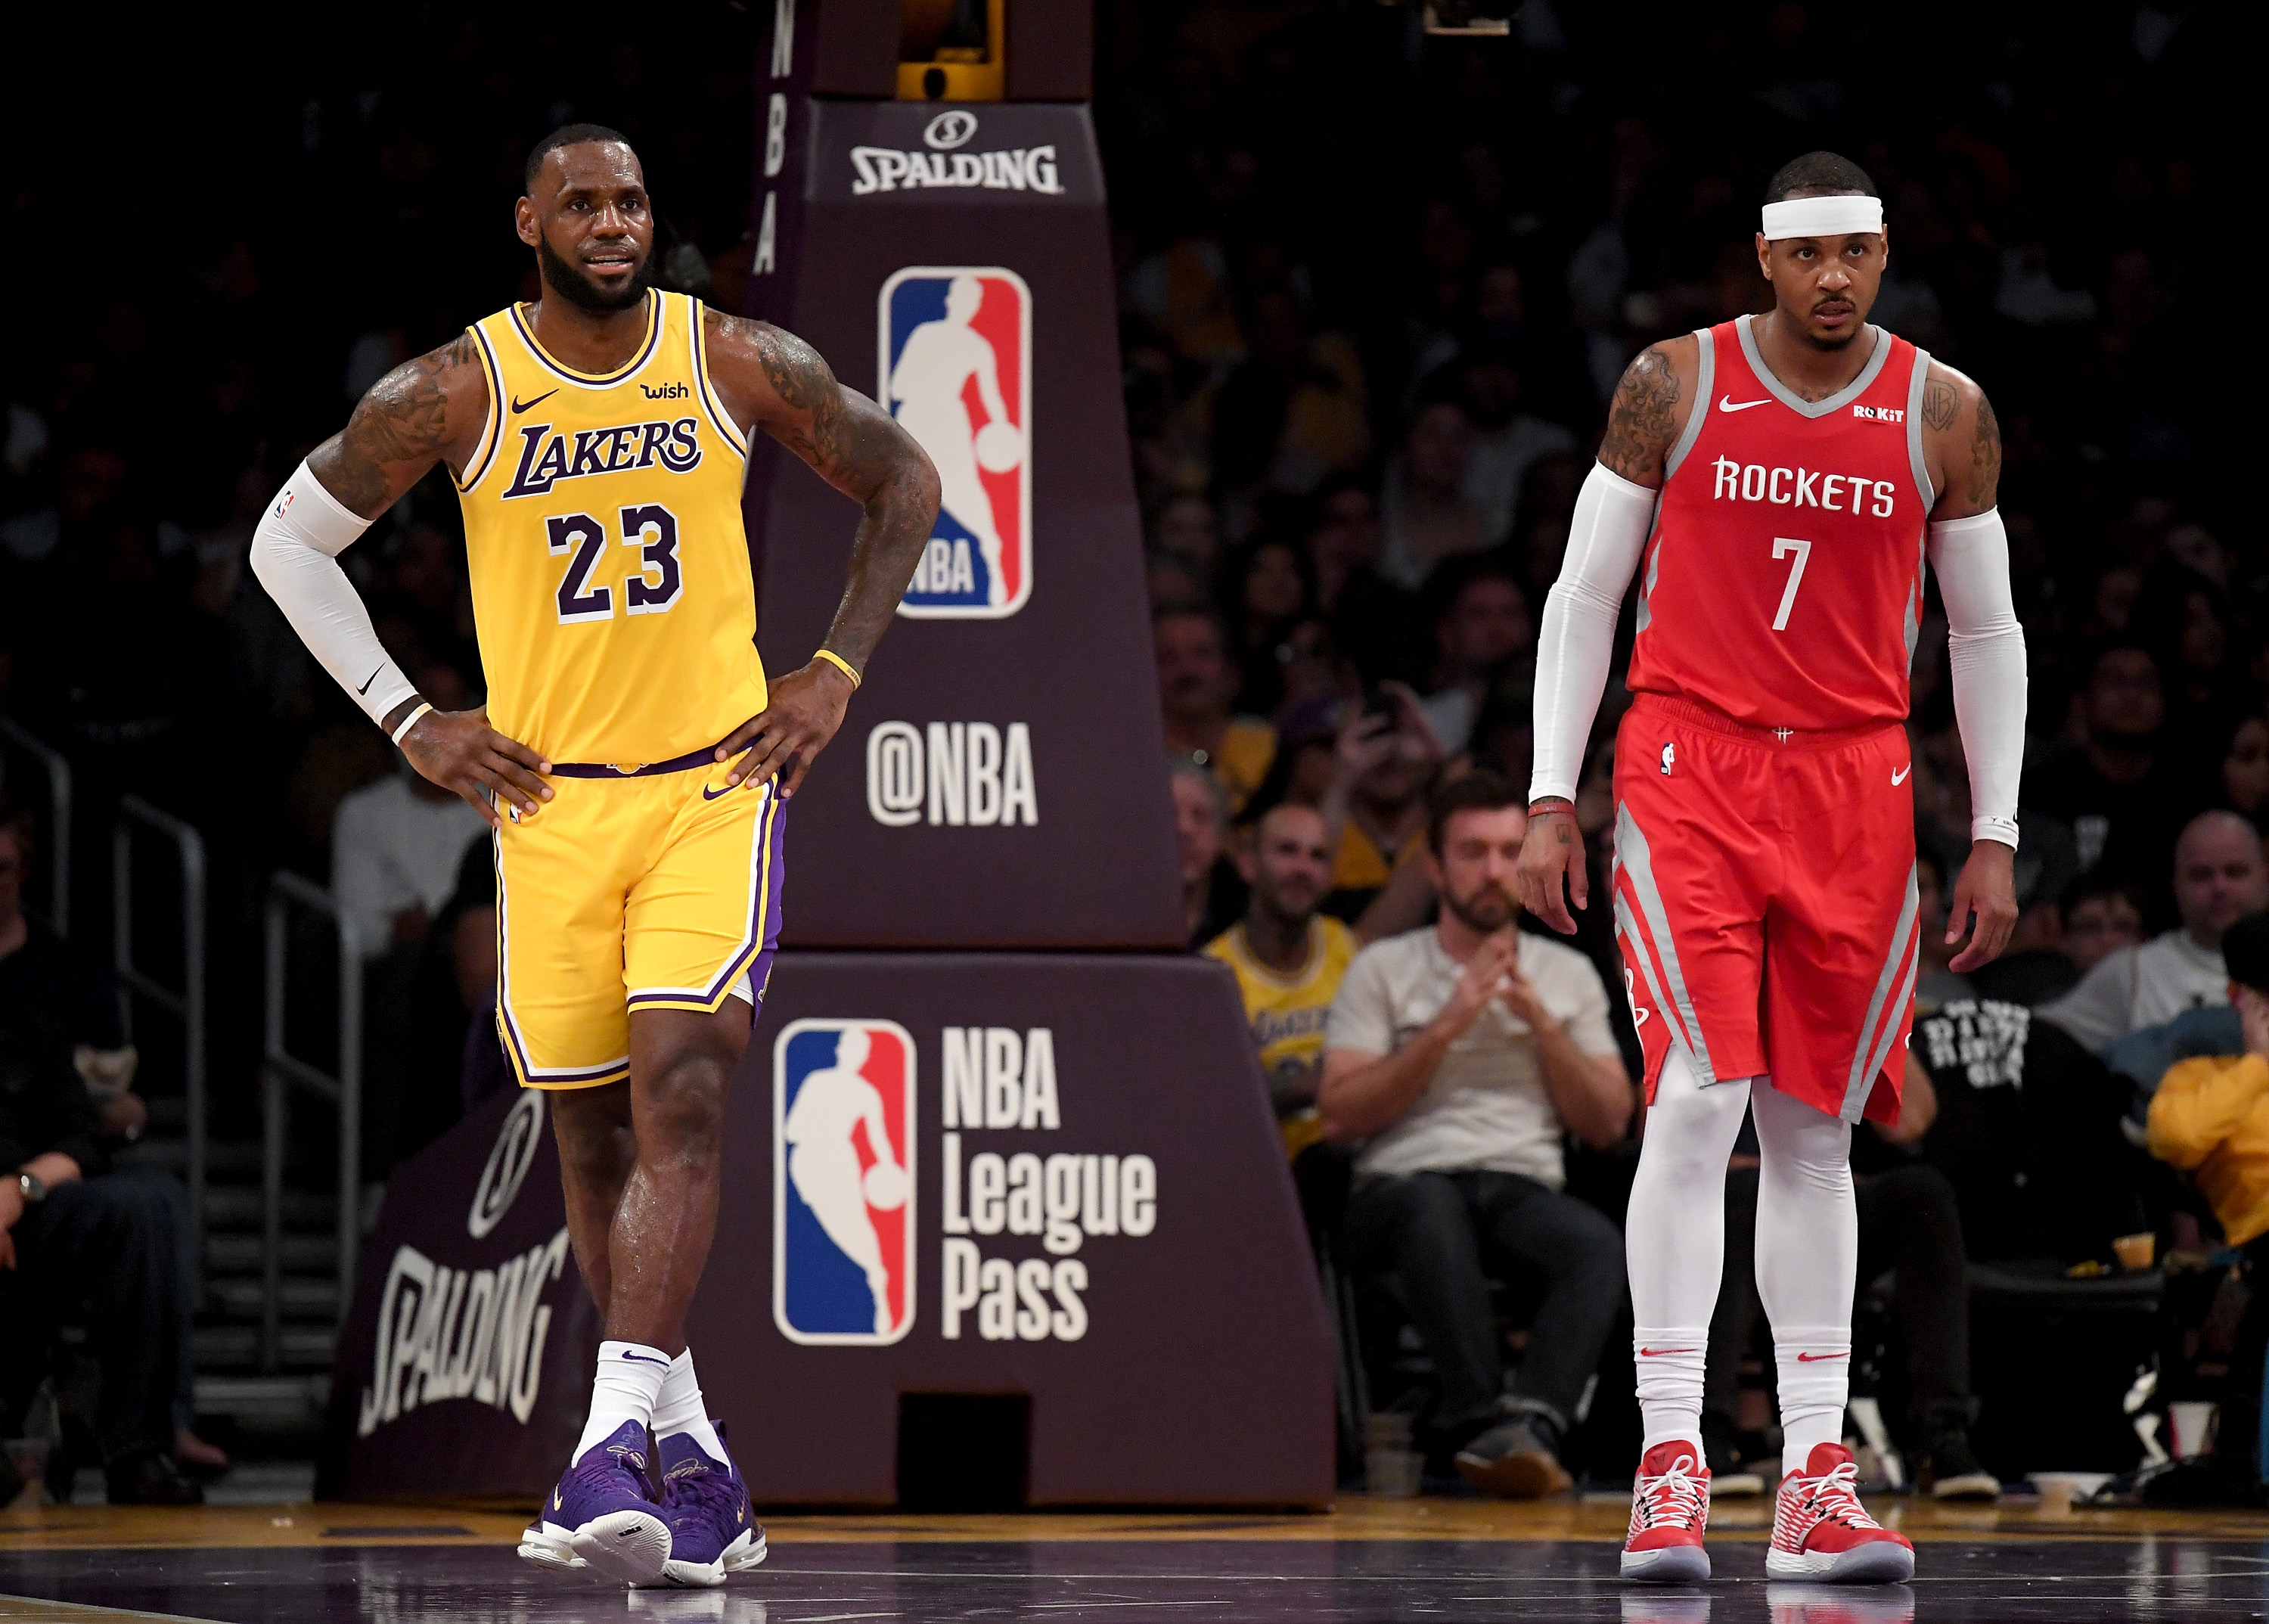 df1b394bfbf LeBron James reportedly wants Carmelo Anthony on the Lakers but hasn t  asked front office to acquire him